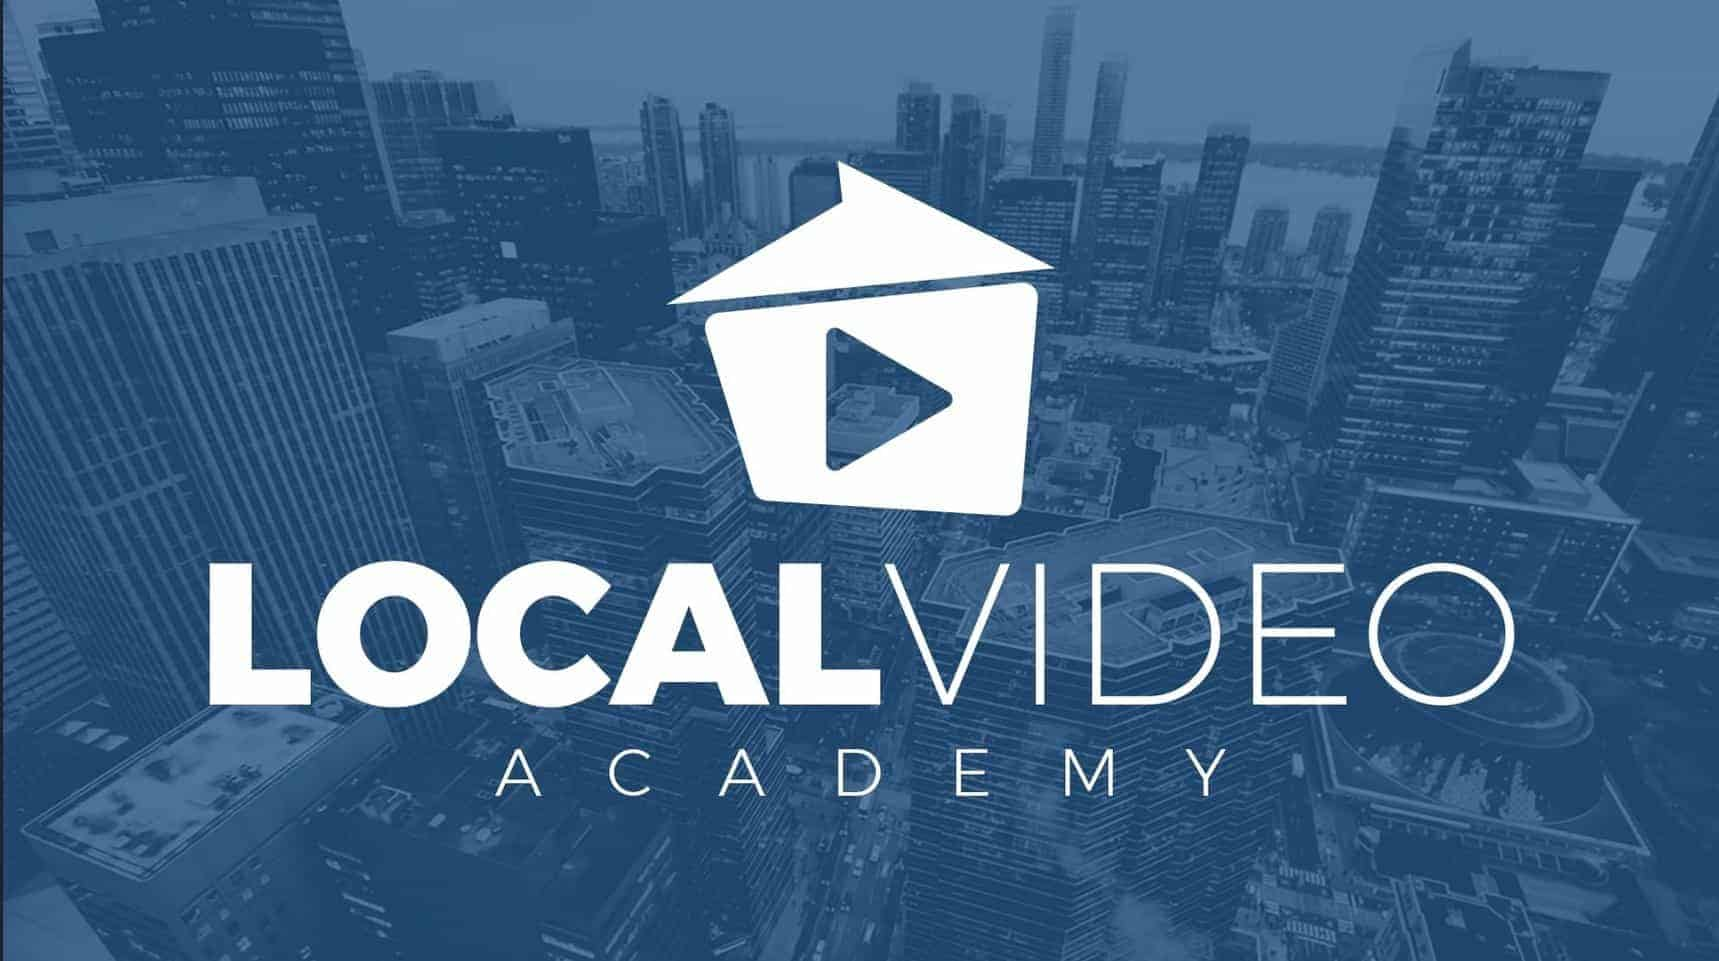 Local Video Academy by Ryan Phillips and Brandon Lucero